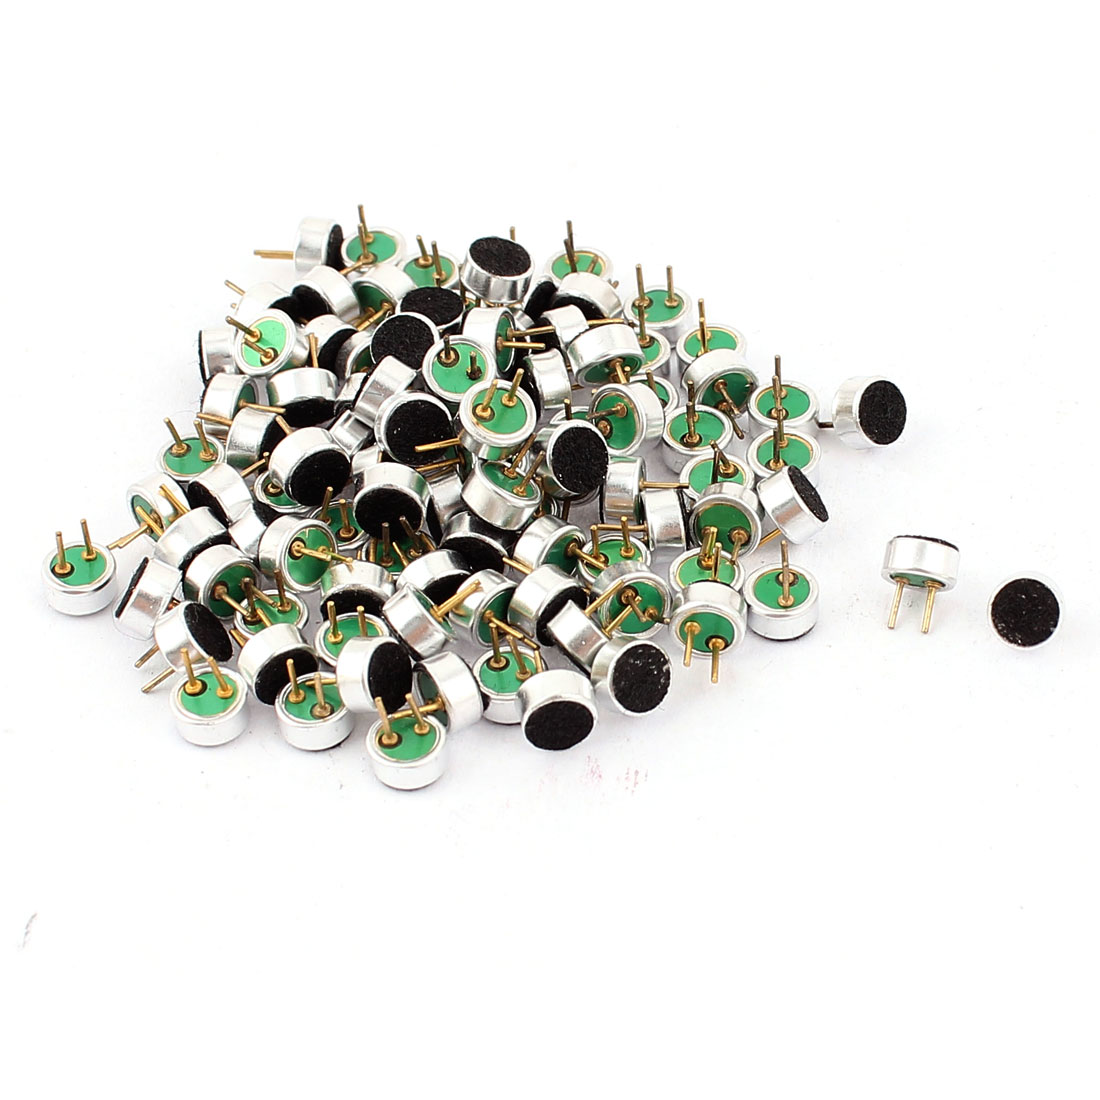 100pcs 4.5mm x 2.2mm Through Hole Mini Electret Microphone Condenser Pickup